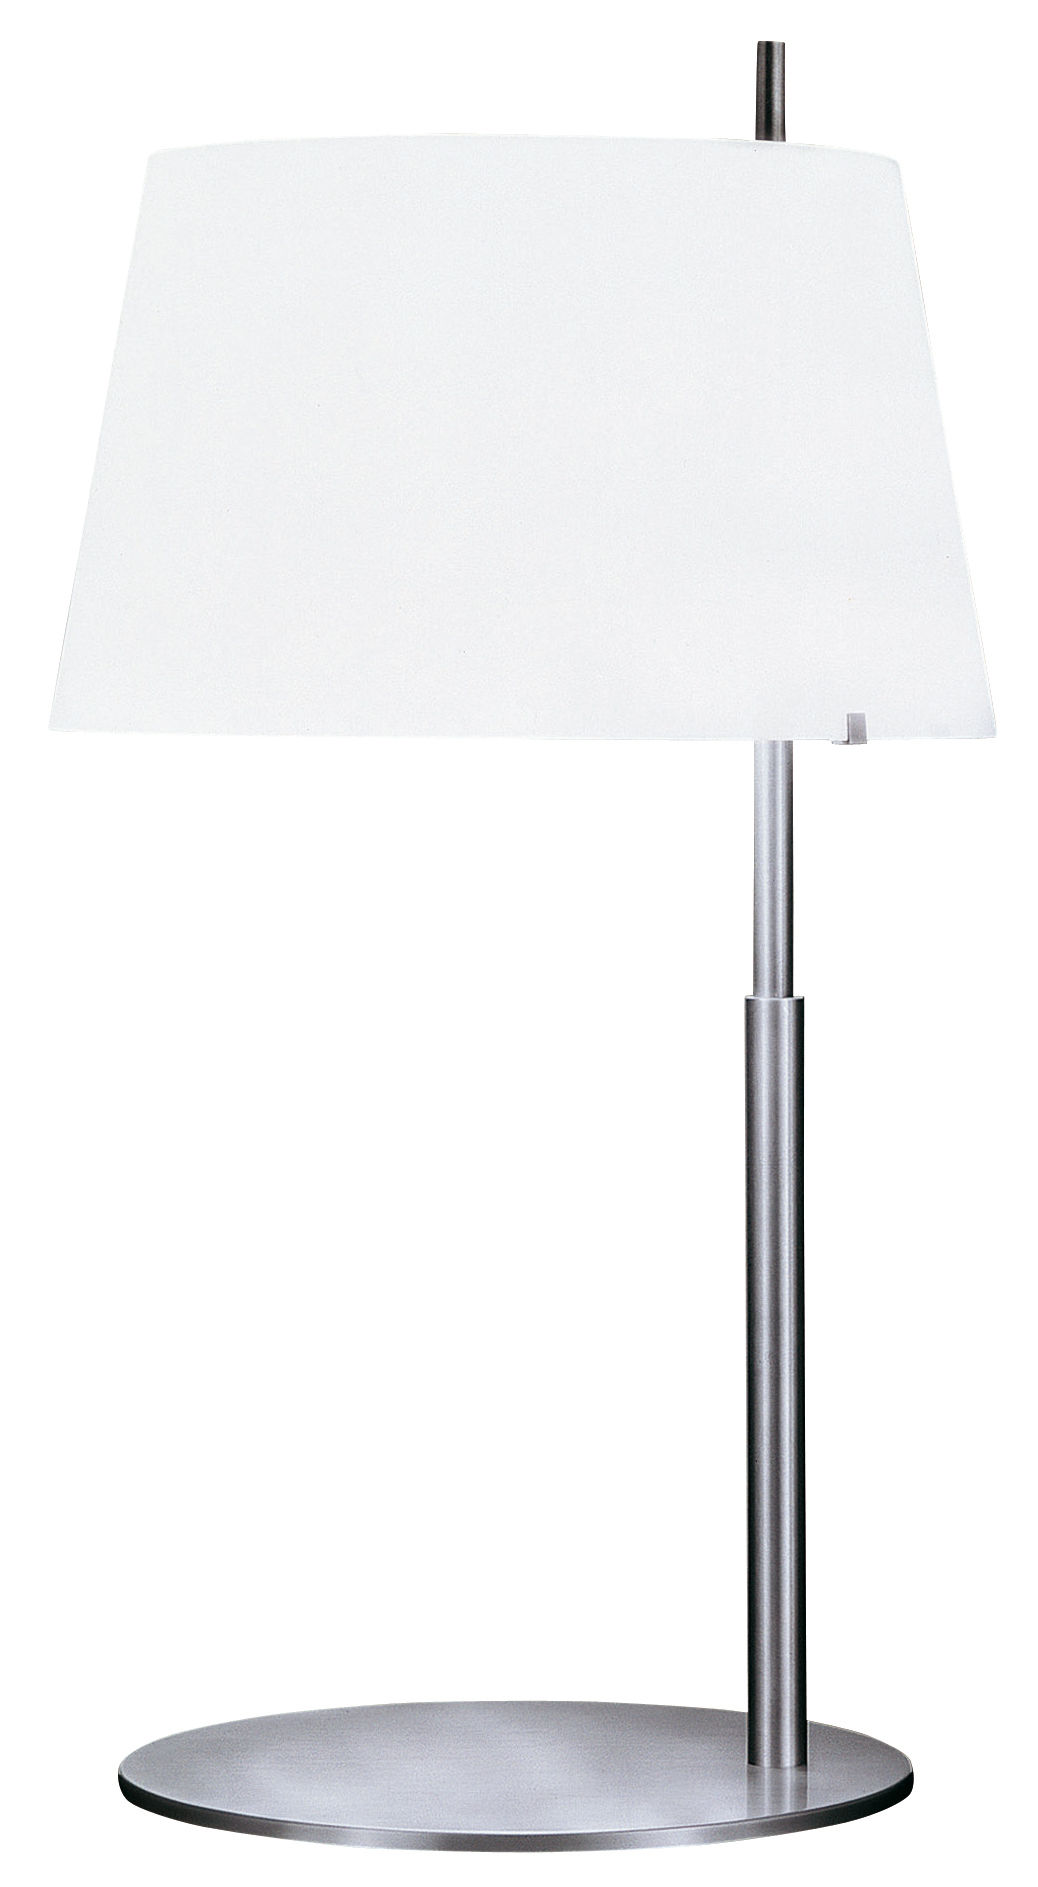 Lighting - Table Lamps - Passion Table lamp by Fontana Arte - H 60 cm - Brushed nickel - Blown glass, Brushed brass